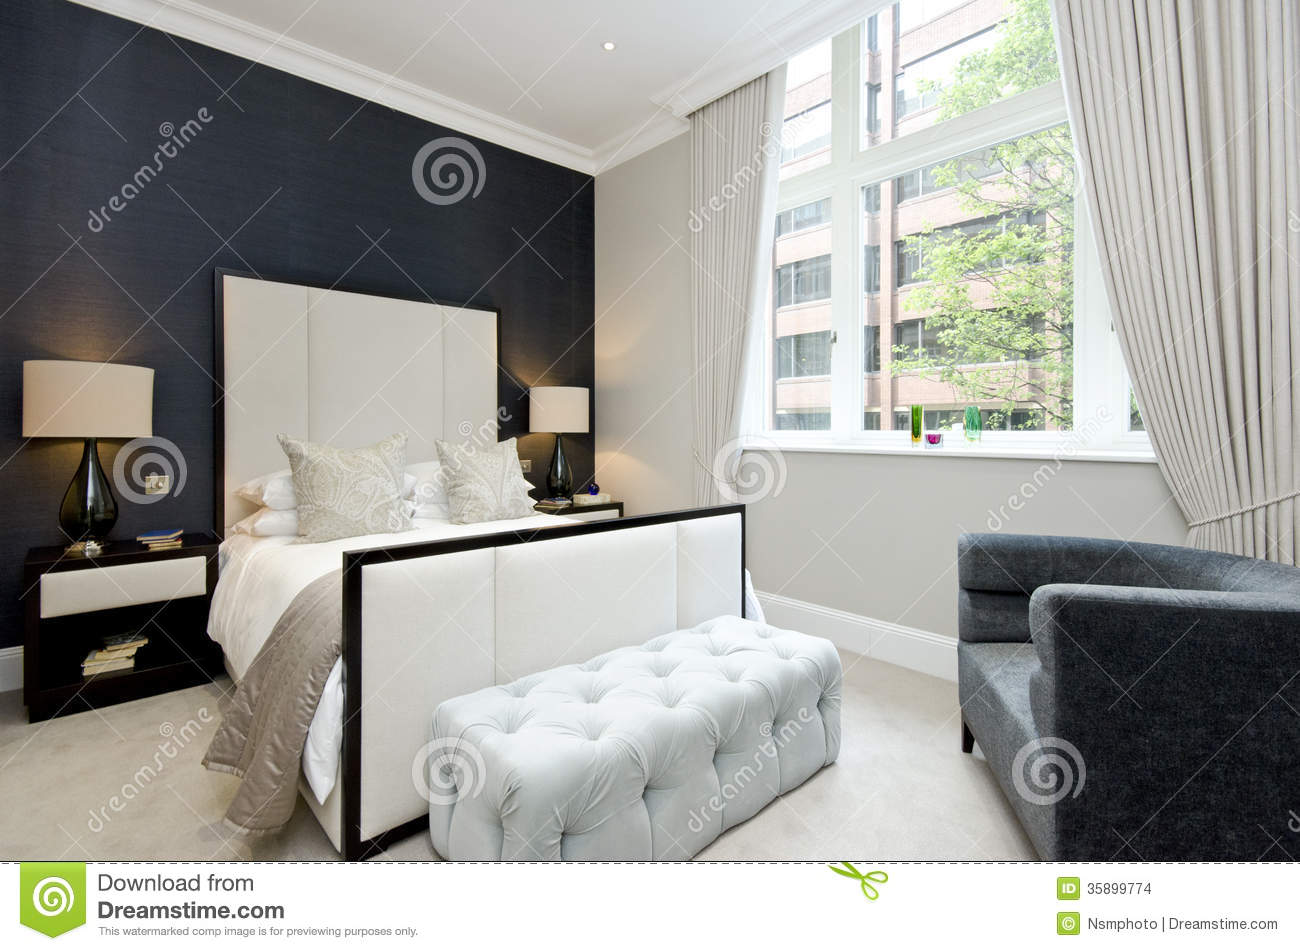 Contemporary bedroom with king size bed with luxury designer fur